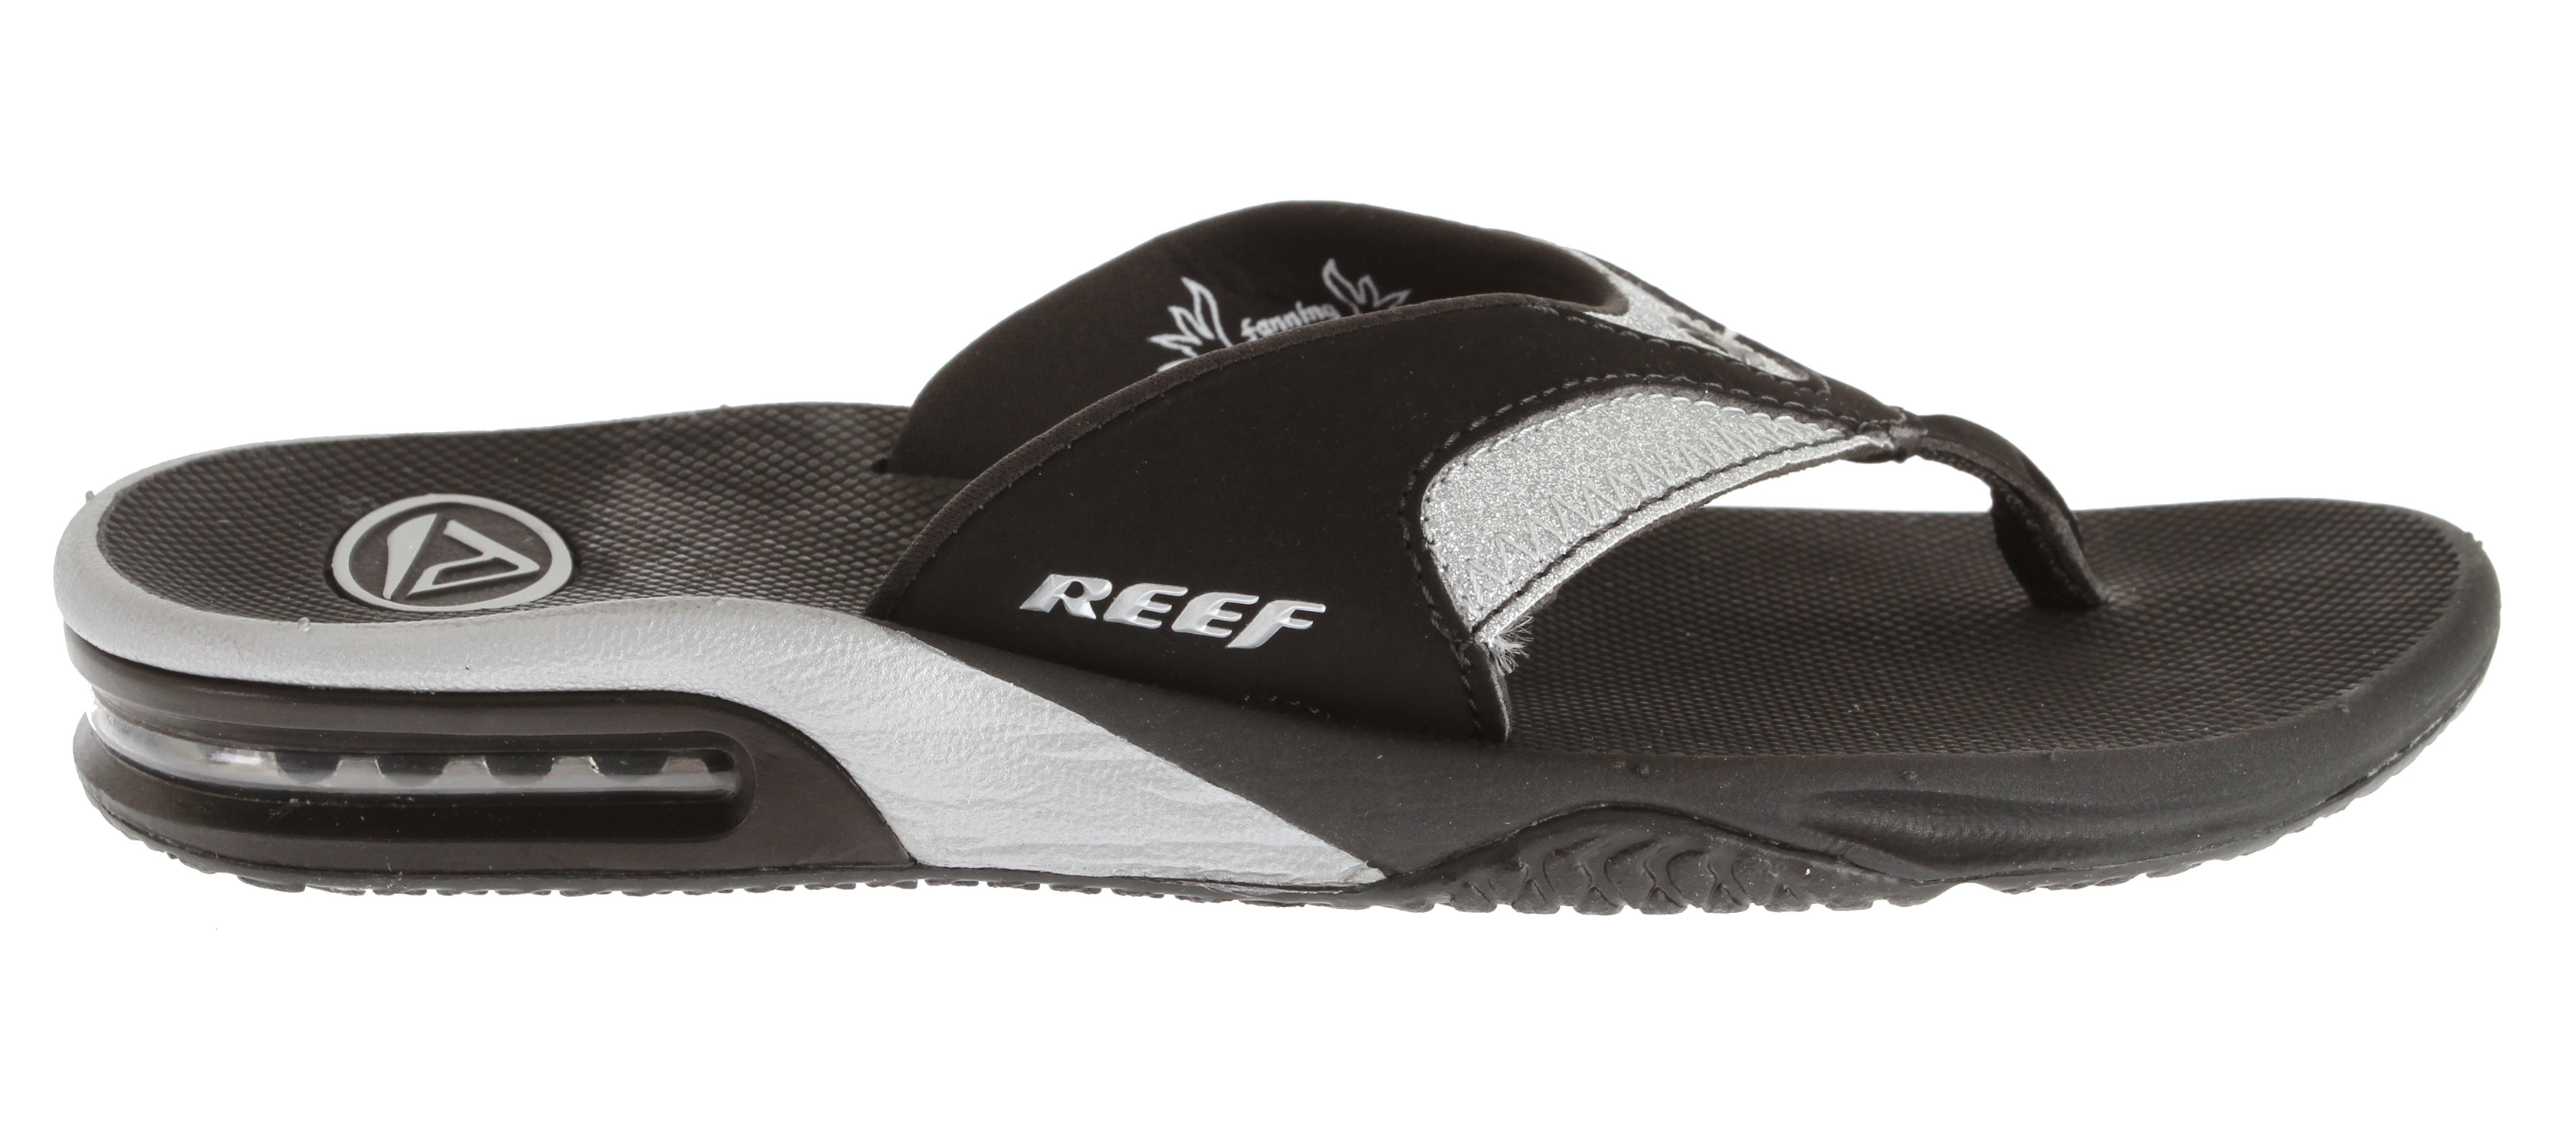 Surf Shoot the breeze on the beach in these glittery Fanning Luxe flip-flops by Reef, inspired by pro surfer Mick Fanning.Key Features of the Reef Fanning Luxe Sandals: Foam rubber upper in a casual thong sandal style with a round open toe and rolled toe thong post Logo detail Textile lining and cushioning foam rubber textured footbed Flexible midsole with a gel cushioned heel Rubber traction outsole with a built-in bottle opener 1 inch wedge heel - $53.95